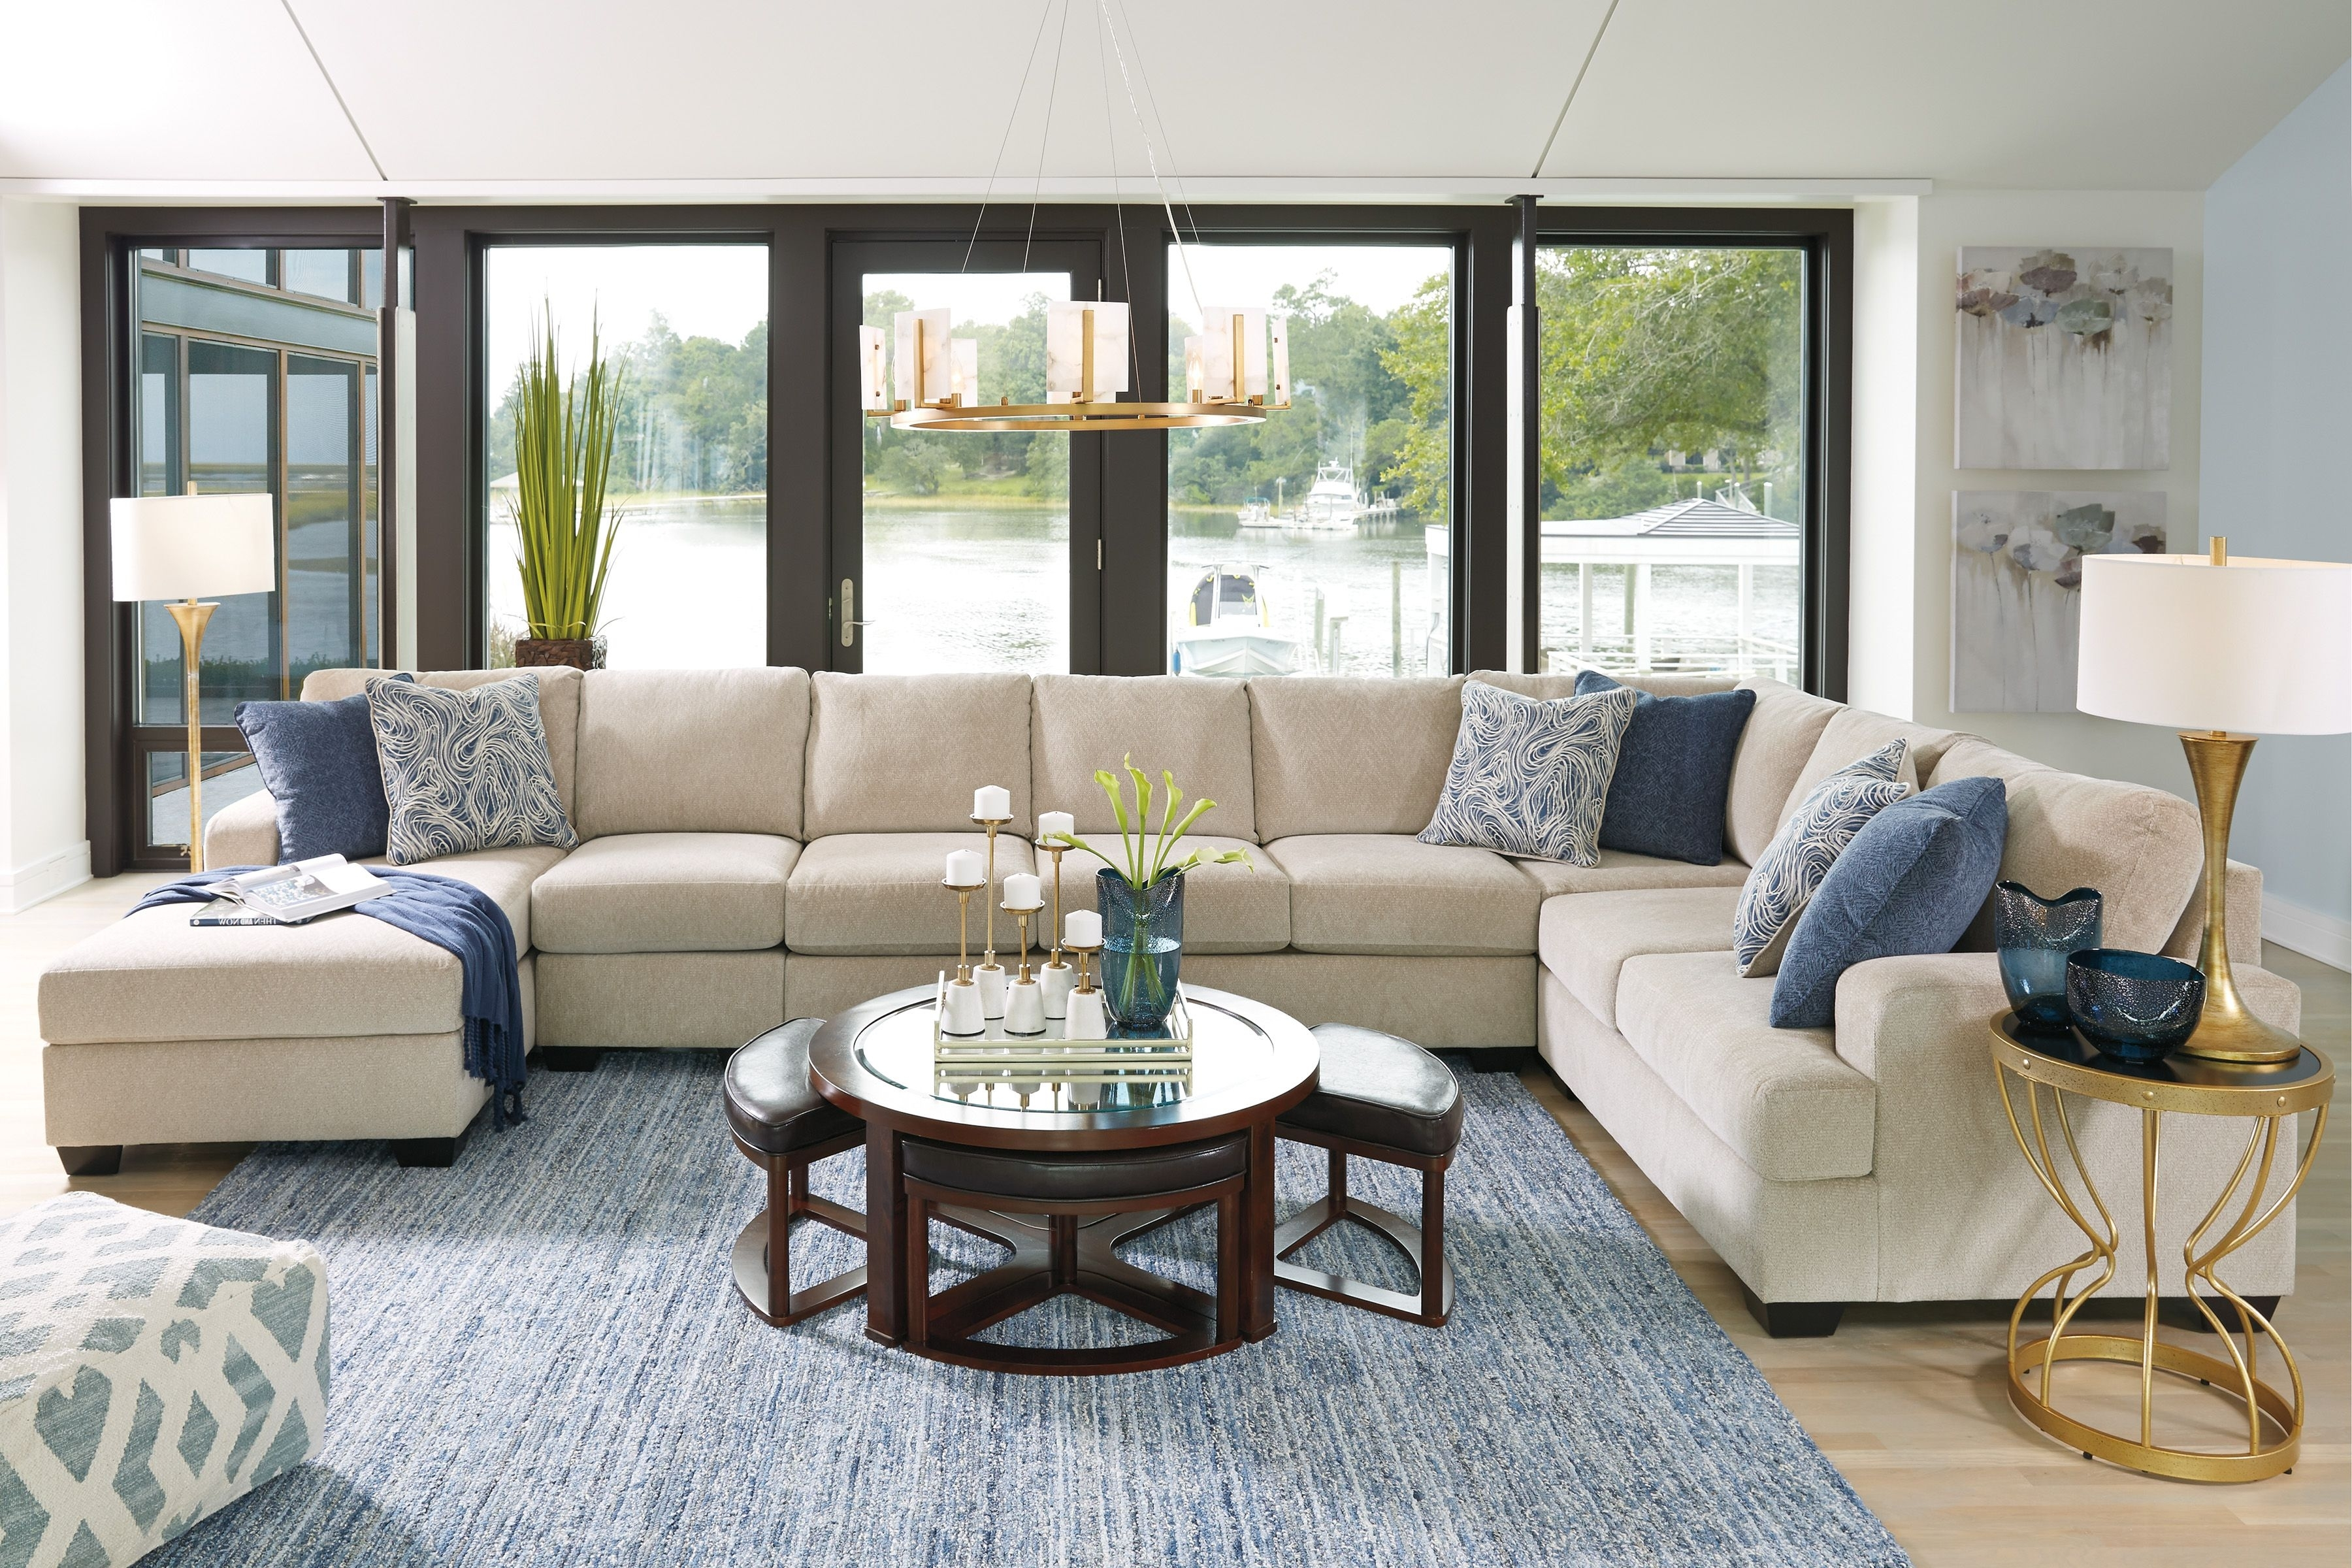 Enola 4 Piece Laf Sectional | Contemporary Living | Pinterest For Benton 4 Piece Sectionals (Image 11 of 25)